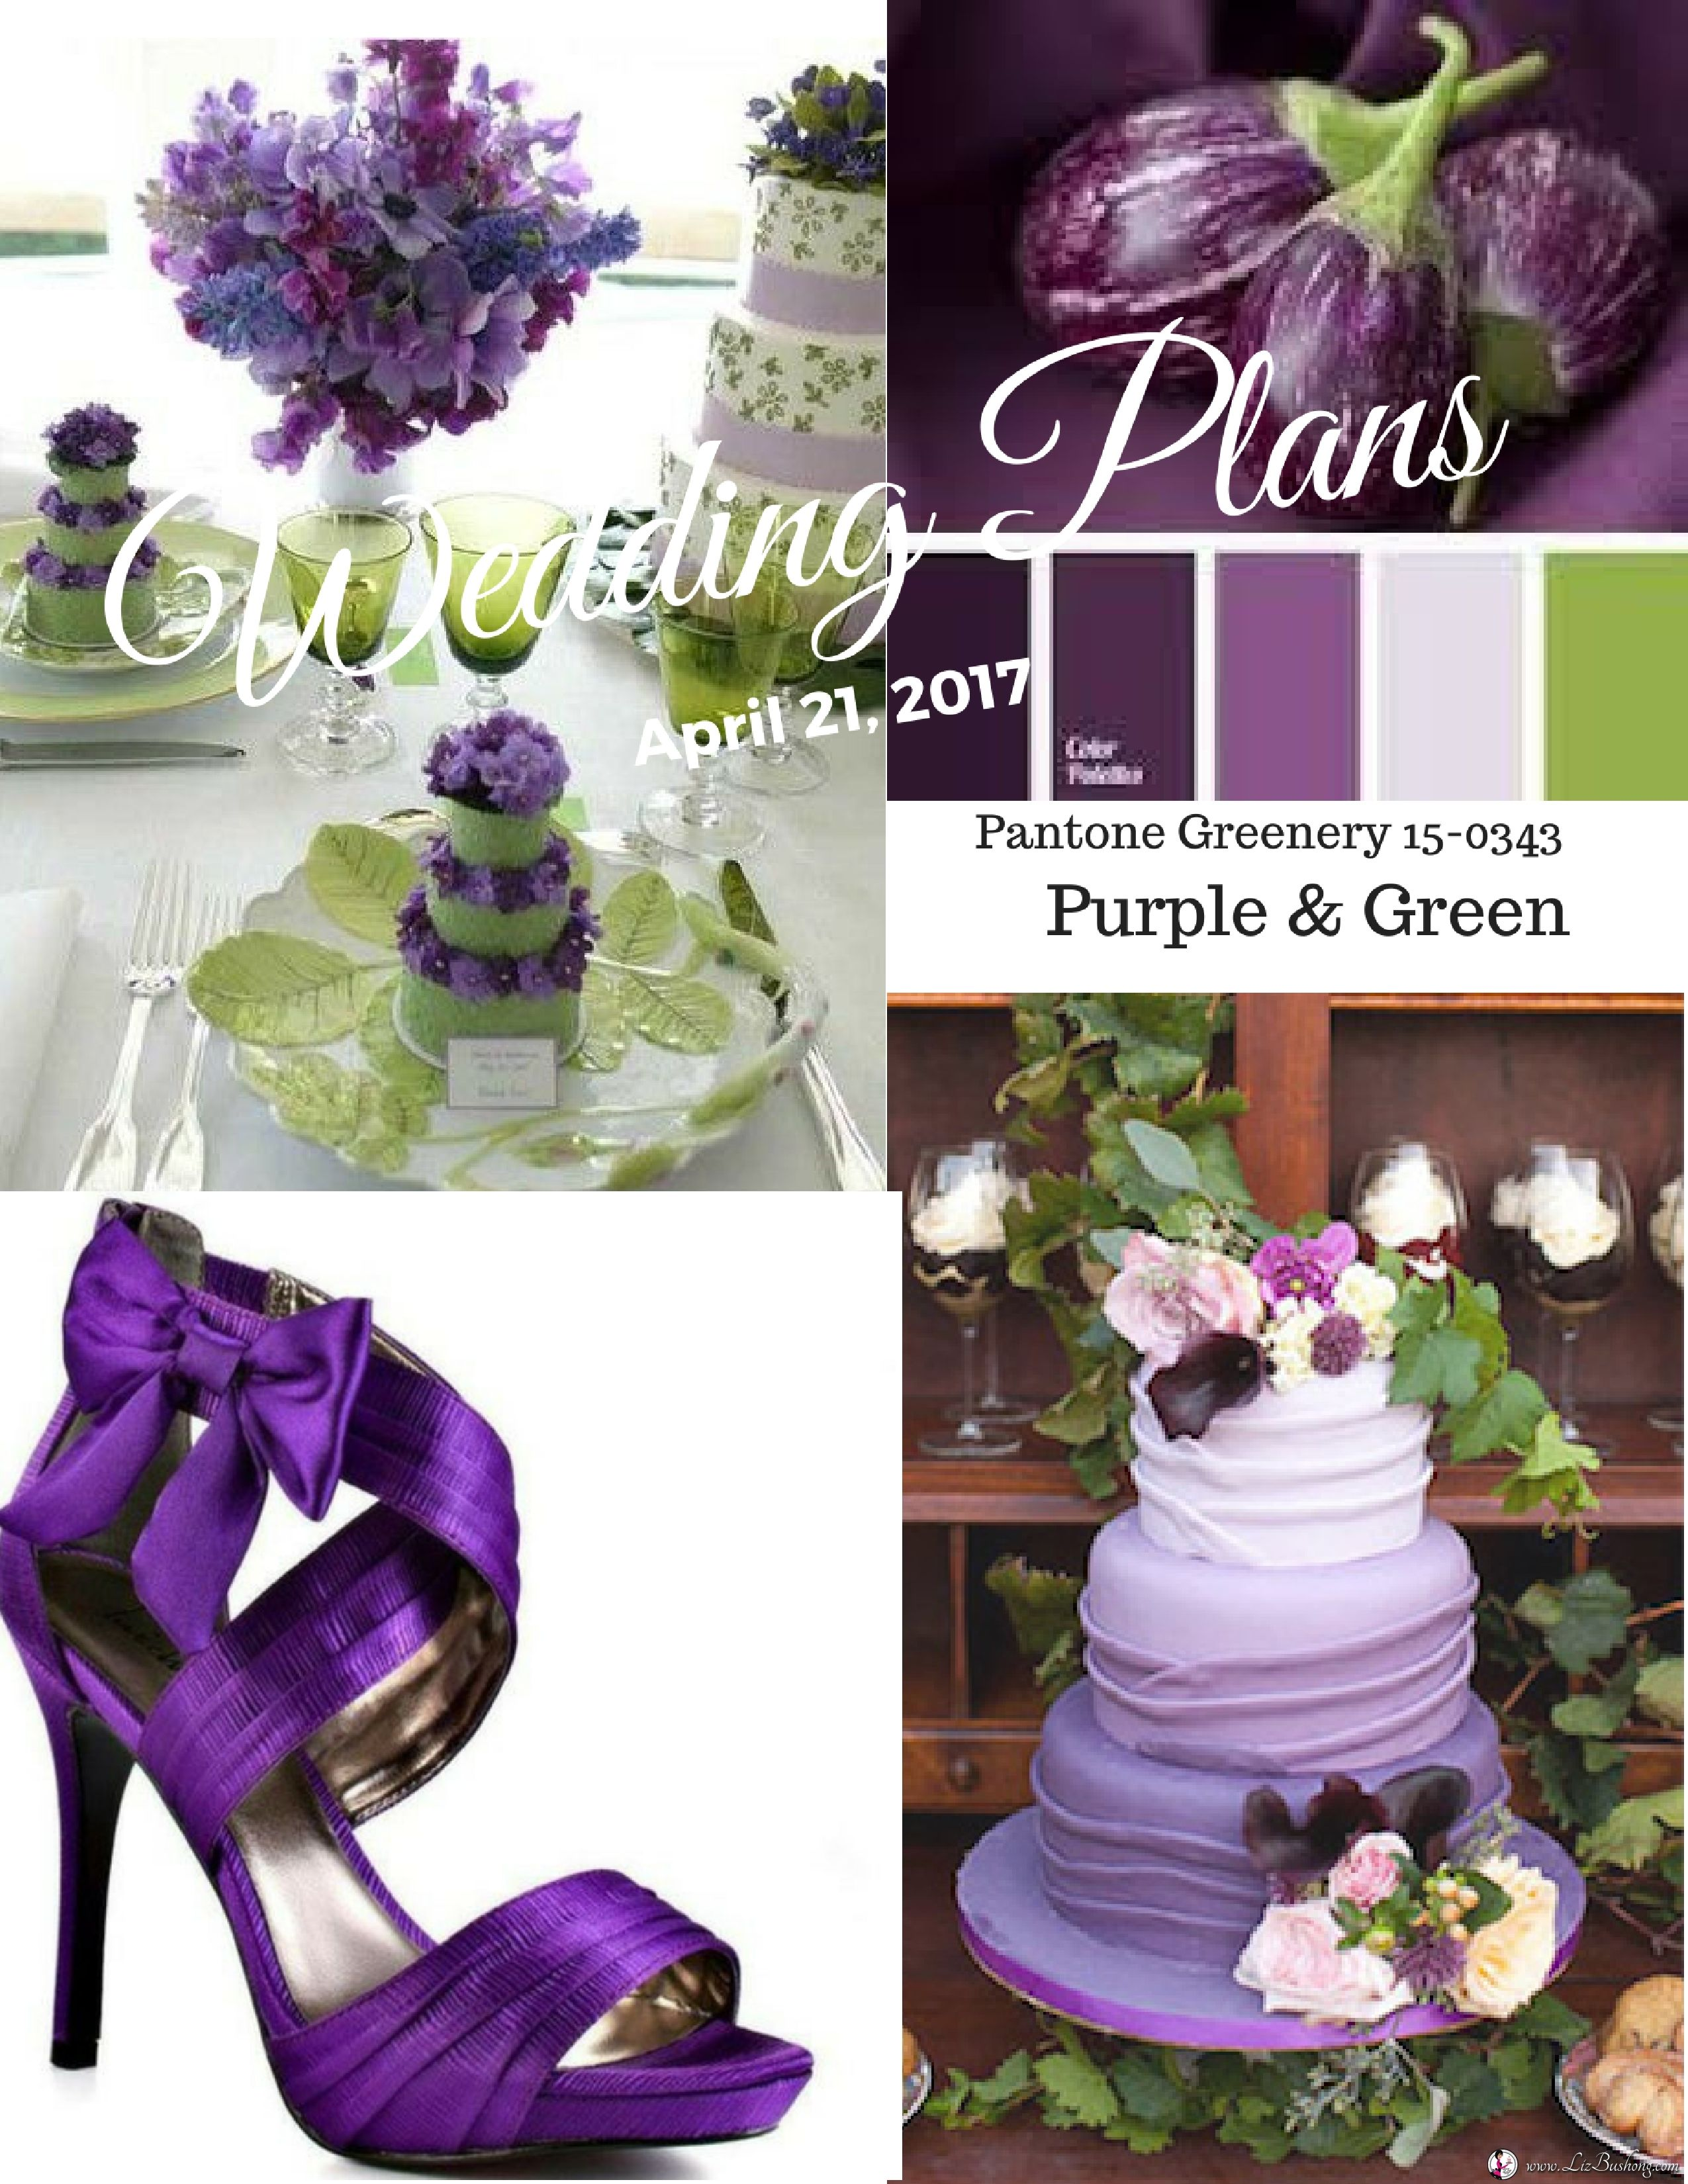 Hosting a Wedding Garden Party with Pansies see how to create a pretty table http://lizbushong.com/hosting-a-wedding-garden-party-with-pansies/